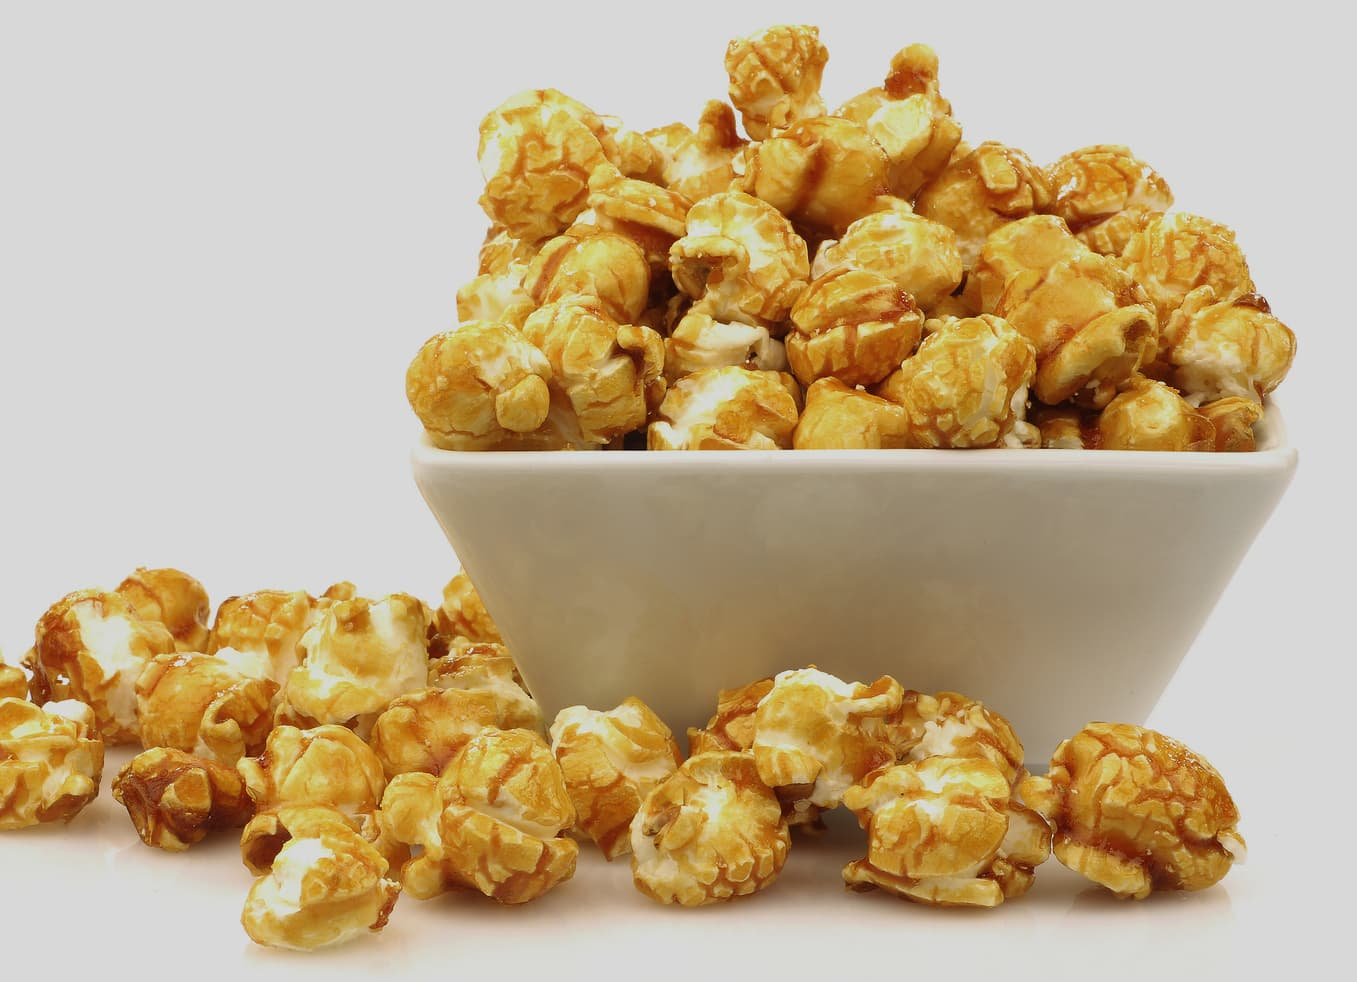 Flavored Popcorn Recipes And Ideas Caramel